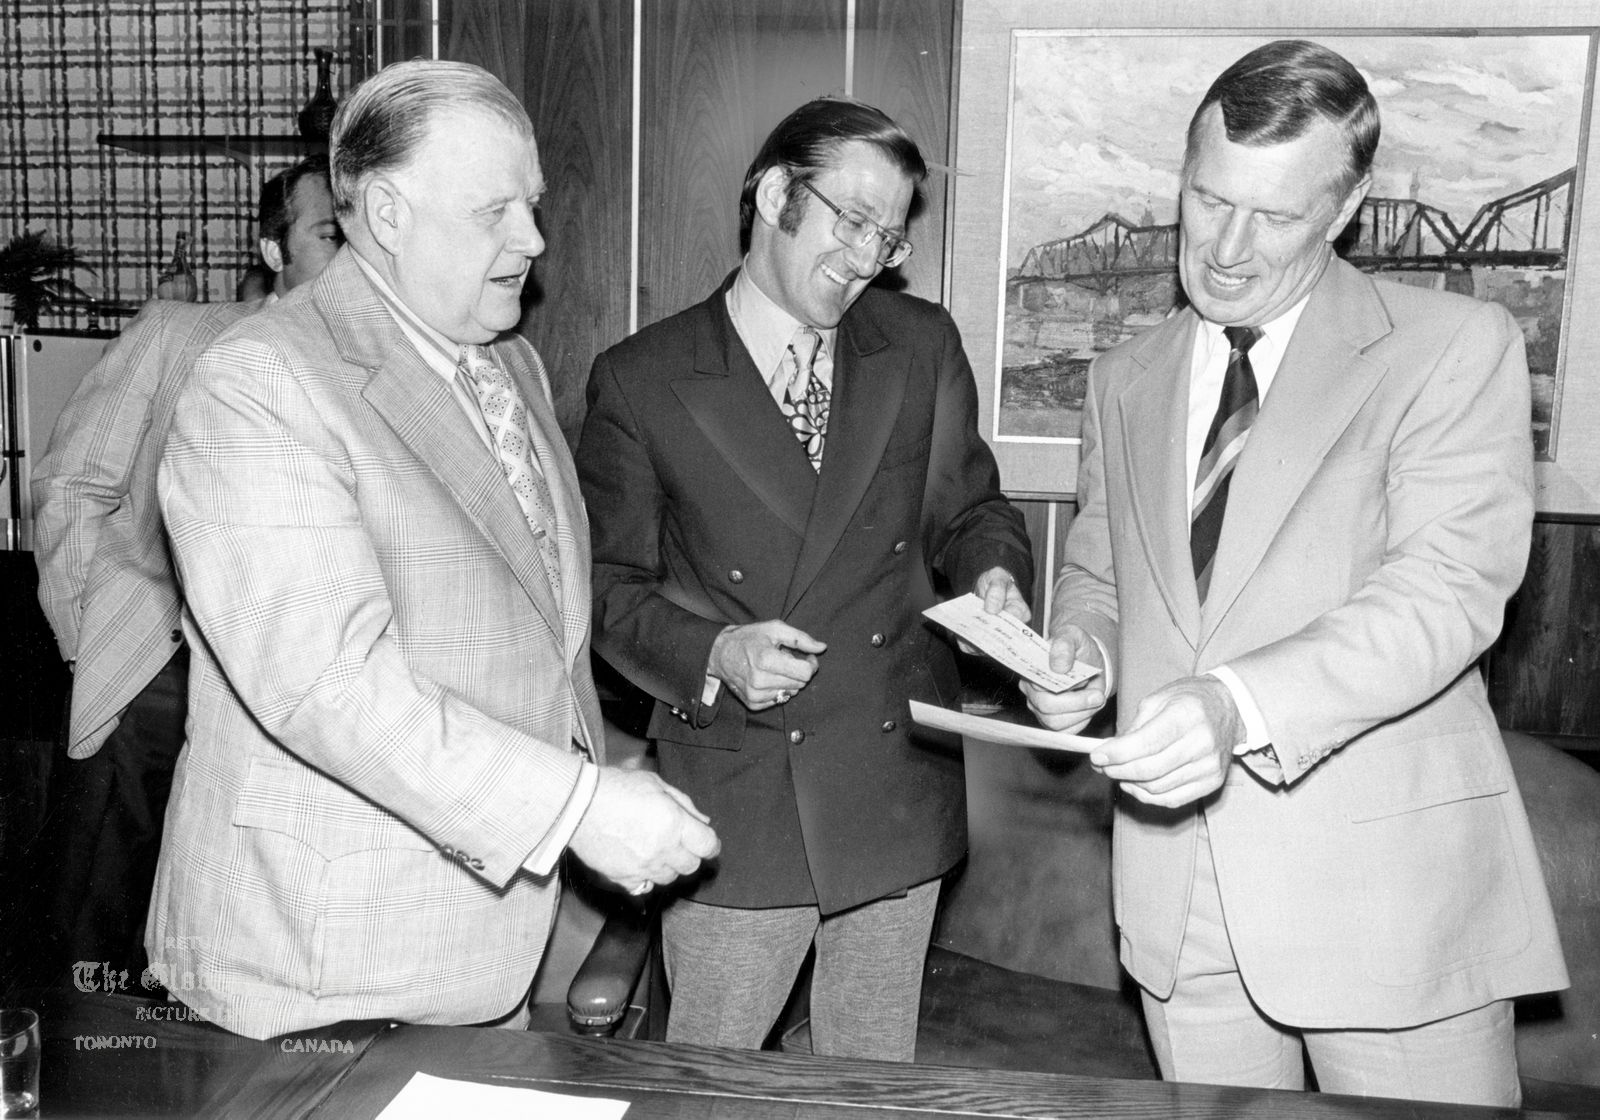 JUNE 26, 1972 -- CANADA-RUSSIA HOCKEY SERIES TV RIGHTS -- Harold Ballard, left, and Alan Eagleson, centre, each hand over $100,000 cheques to Allan Scott, business manager of Hockey Canada on June 26, 1972 in Toronto as down payment for the $750,000 television rights for the Canada-Russia Summit Series due to begin Sept. 2, 1972. Photo by Tibor Kolley / The Globe and Mail Originally published June 27, 1972. Summit Series